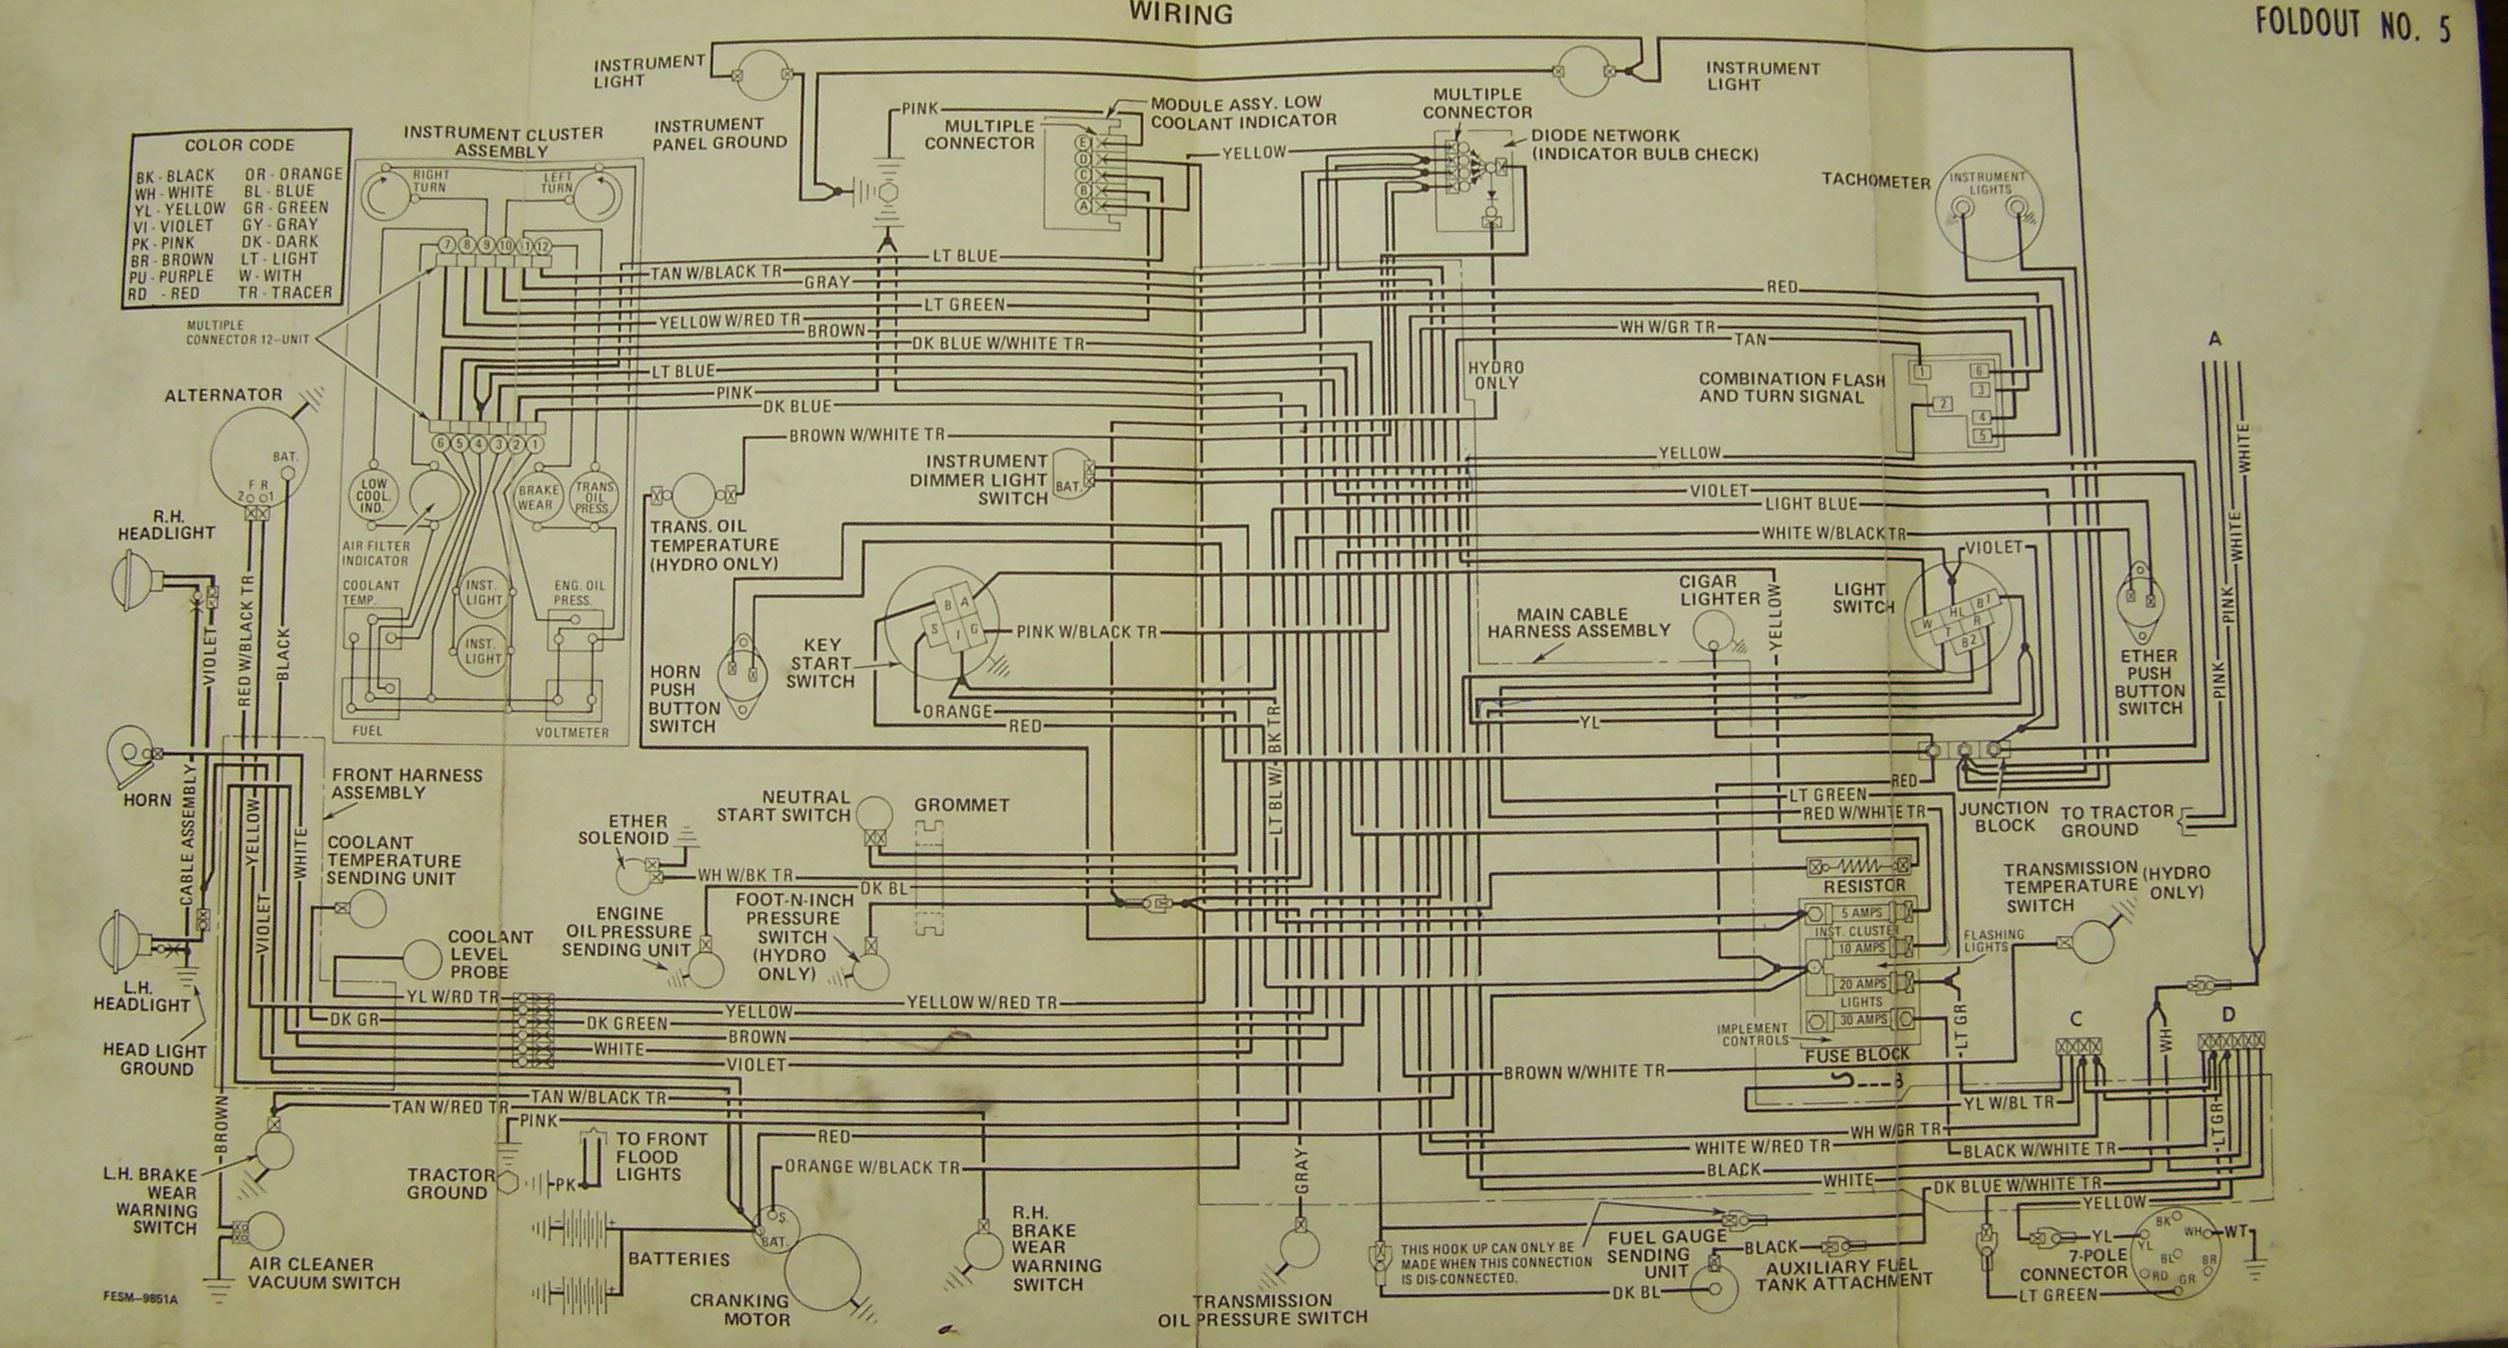 carter gruenewald co inc ih farmall tractor electrical wiring rh cngco com international wiring schematics 1456 Wiring Schematic Symbols